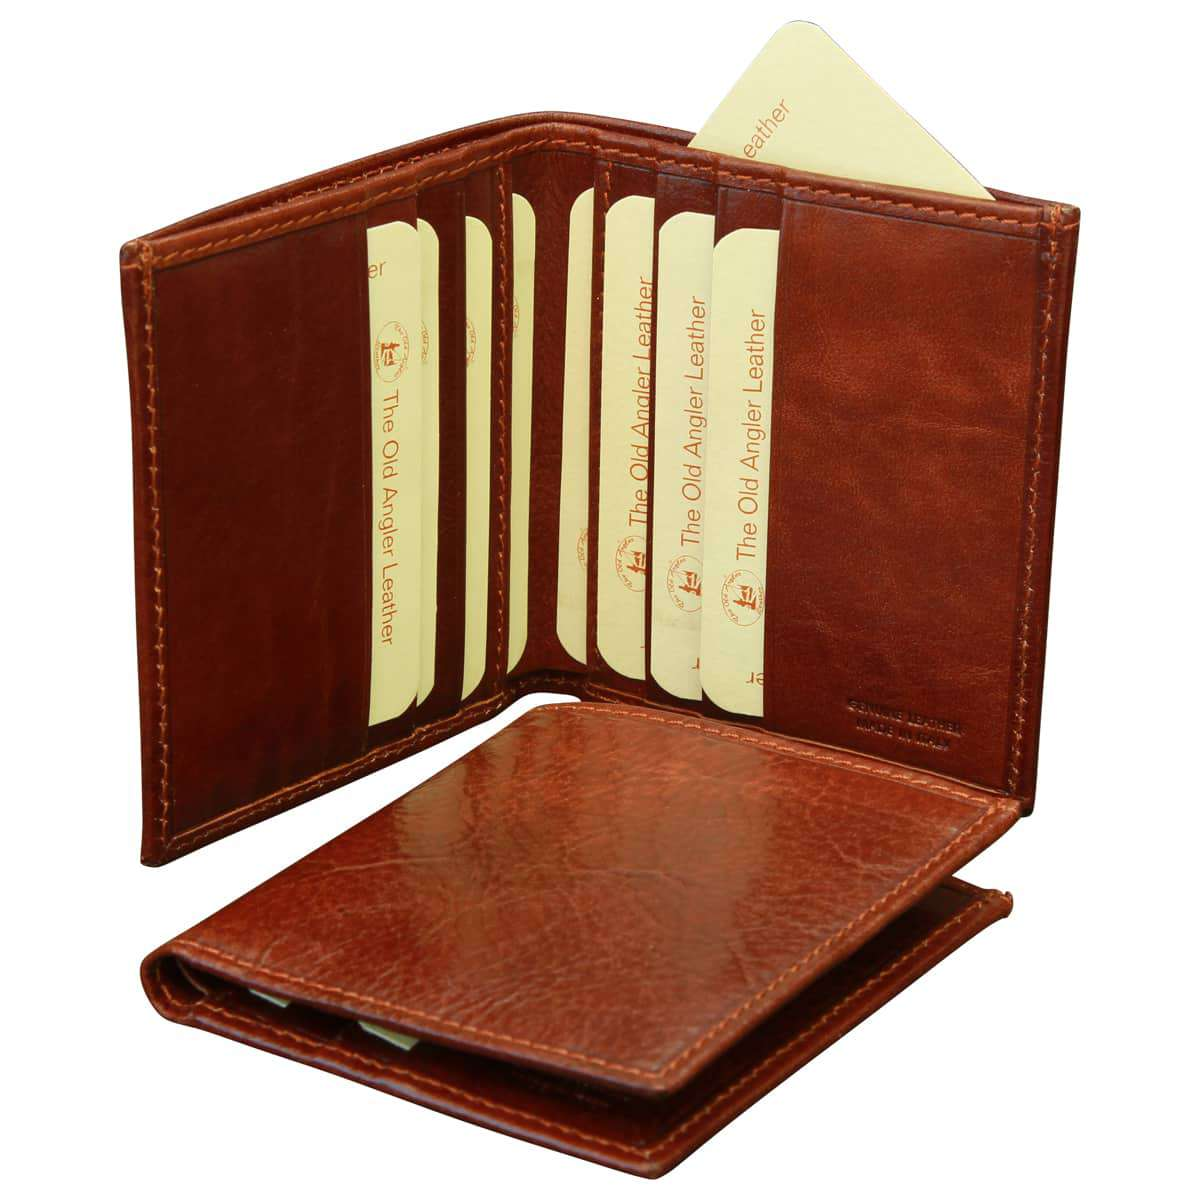 Small leather wallet - Brown | 803705MA UK | Old Angler Firenze